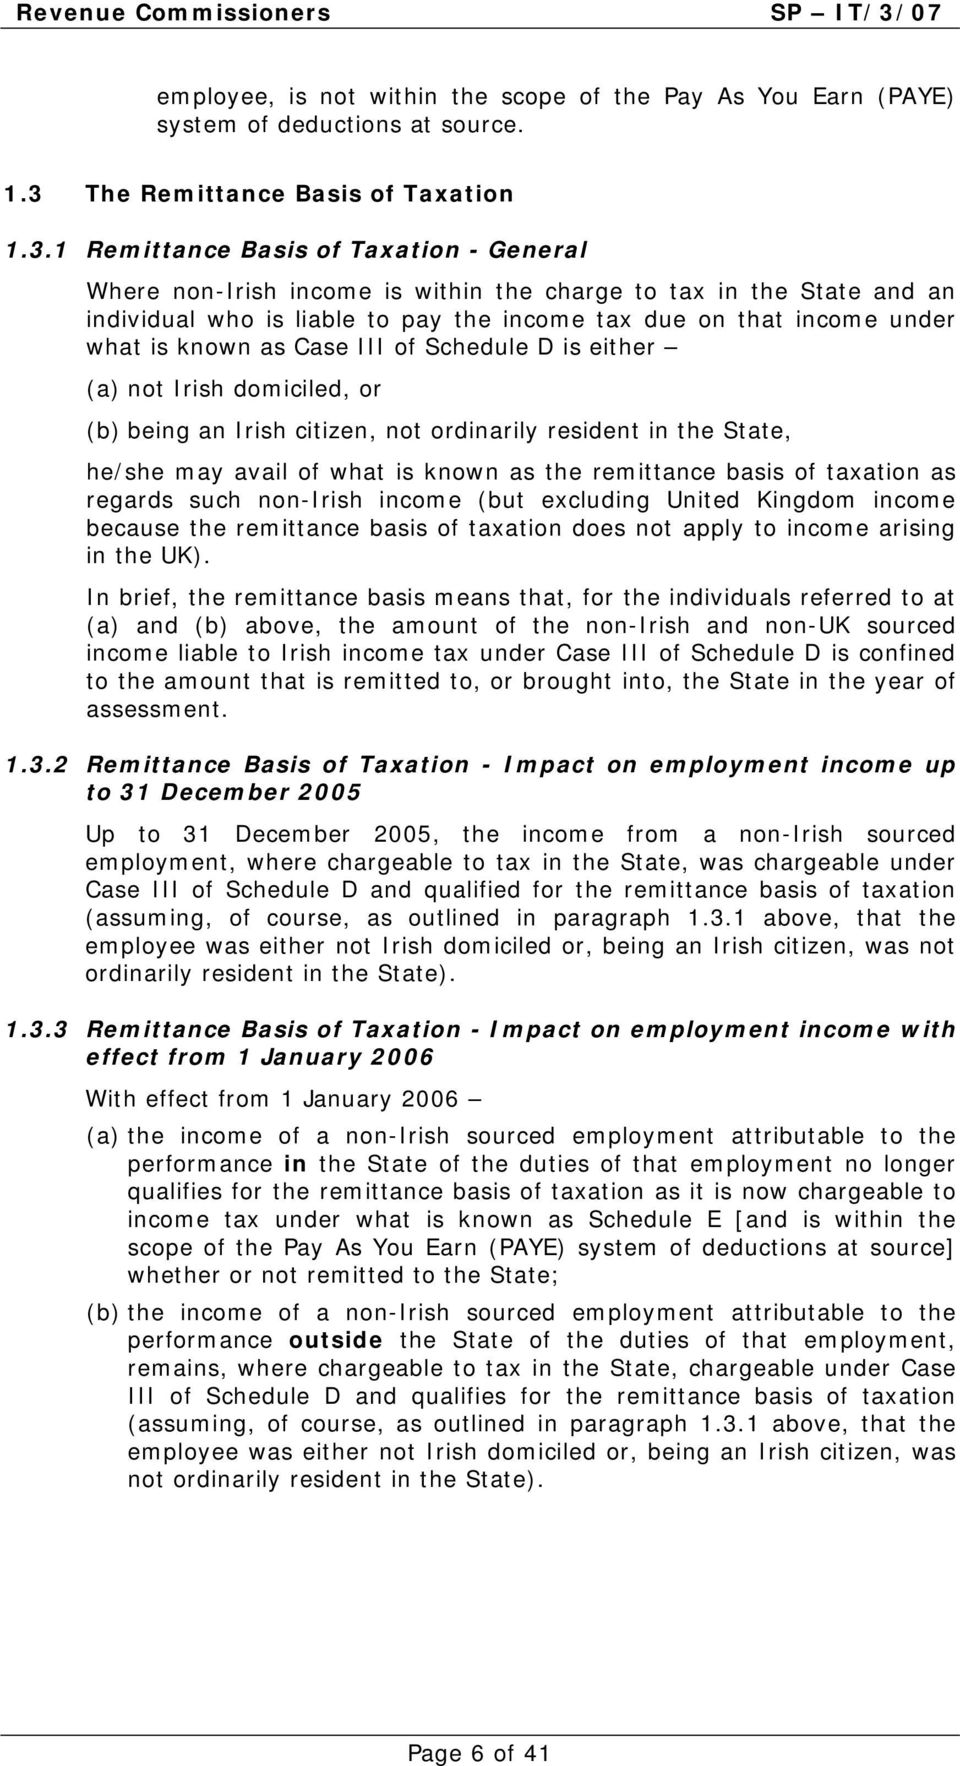 1 Remittance Basis of Taxation - General Where non-irish income is within the charge to tax in the State and an individual who is liable to pay the income tax due on that income under what is known